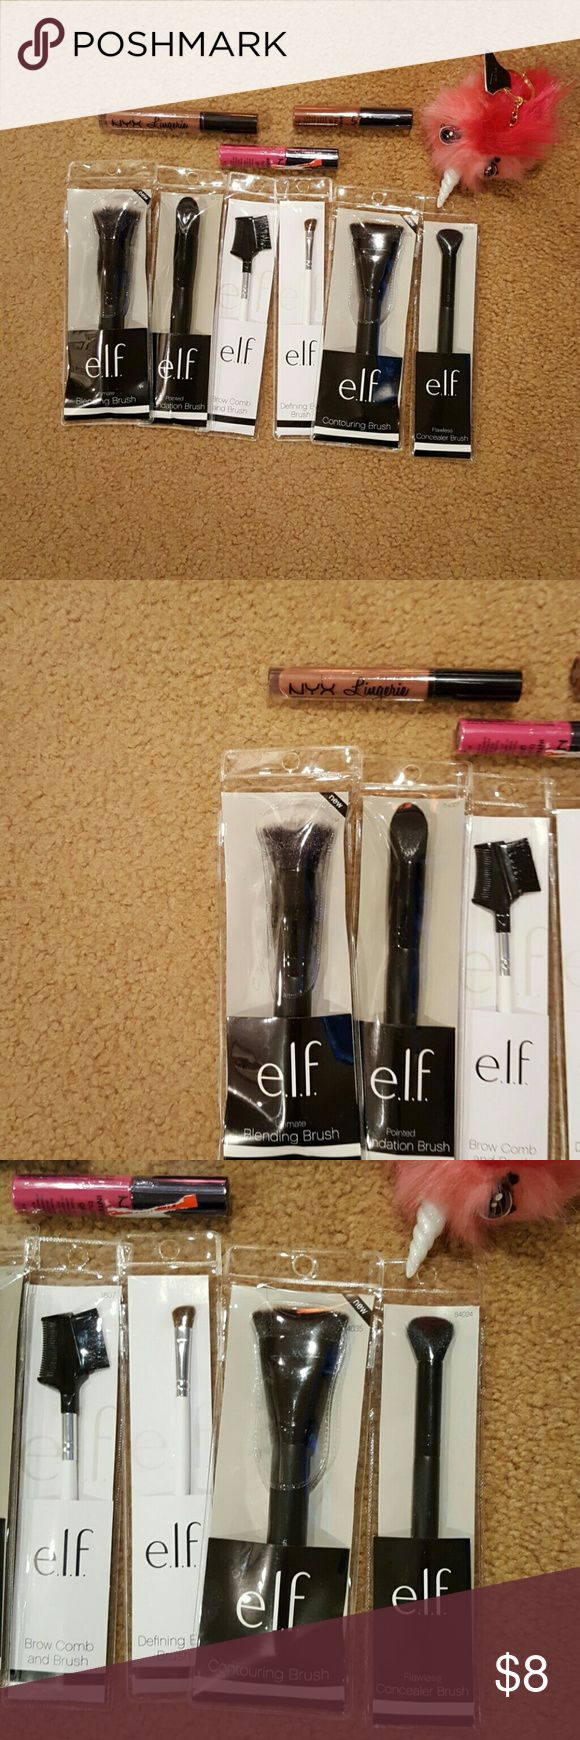 Elf brushes BNWT. Elder brushes and a litter more. Makeup